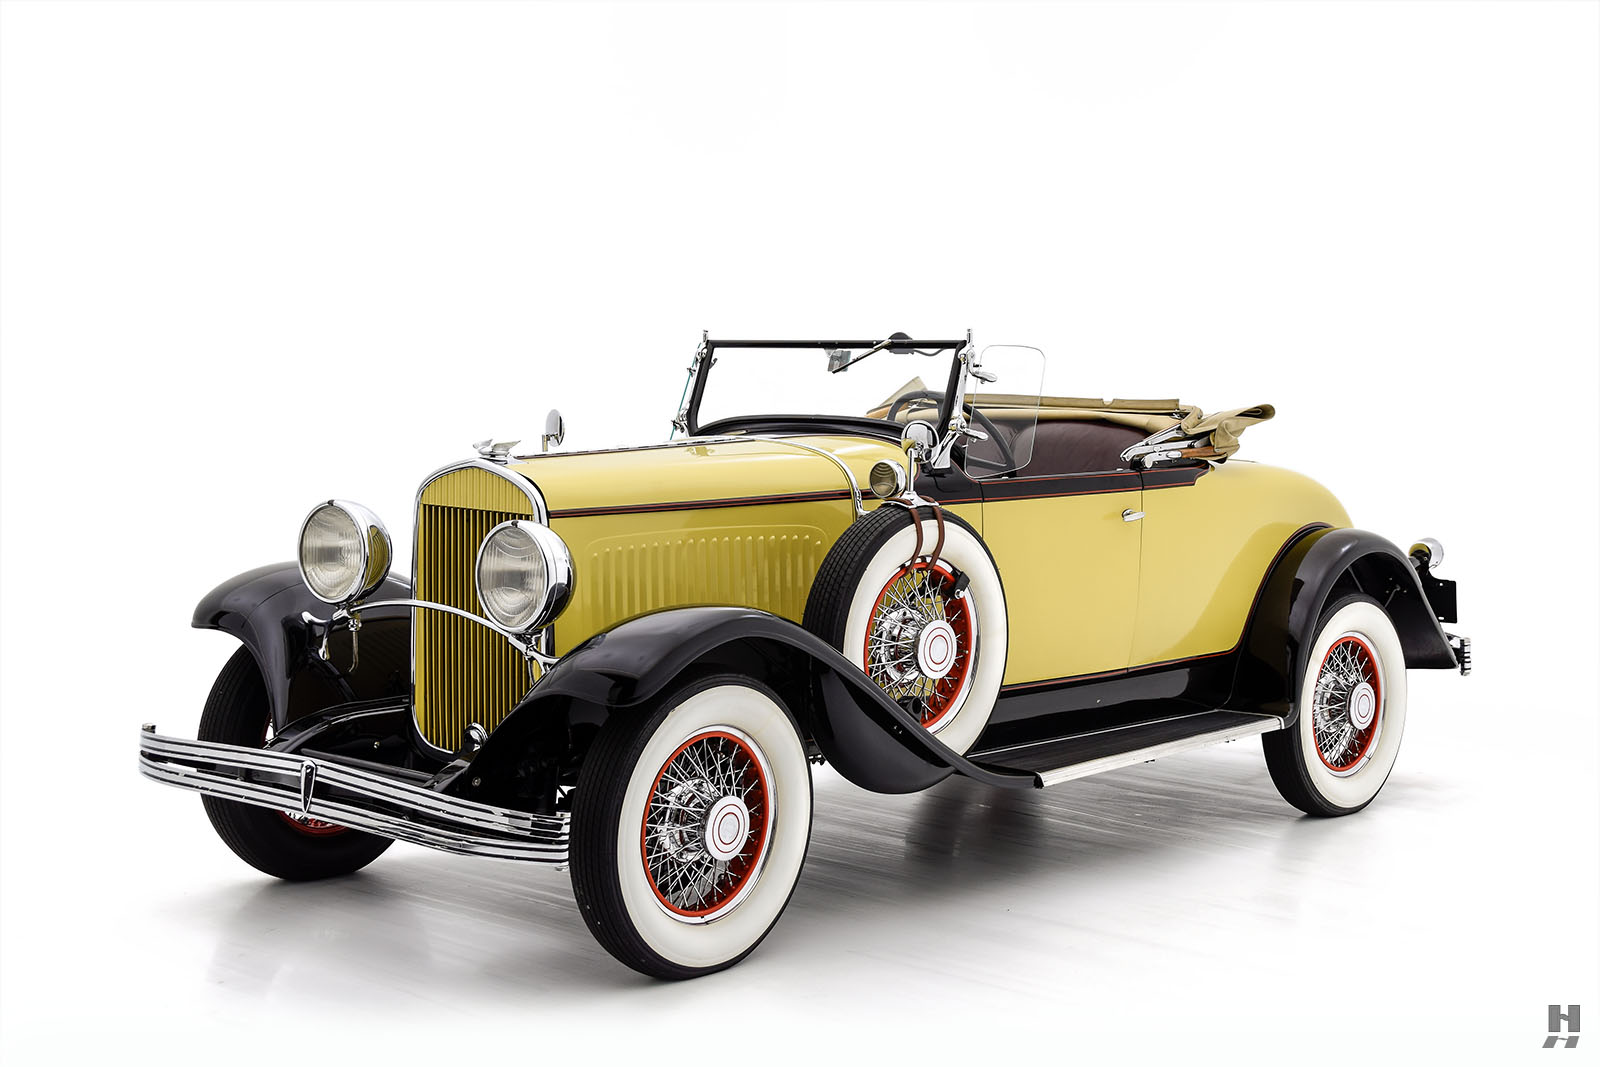 1929 Chrysler Model 75 Roadster For Sale Buy Classic Cars Hyman Ltd